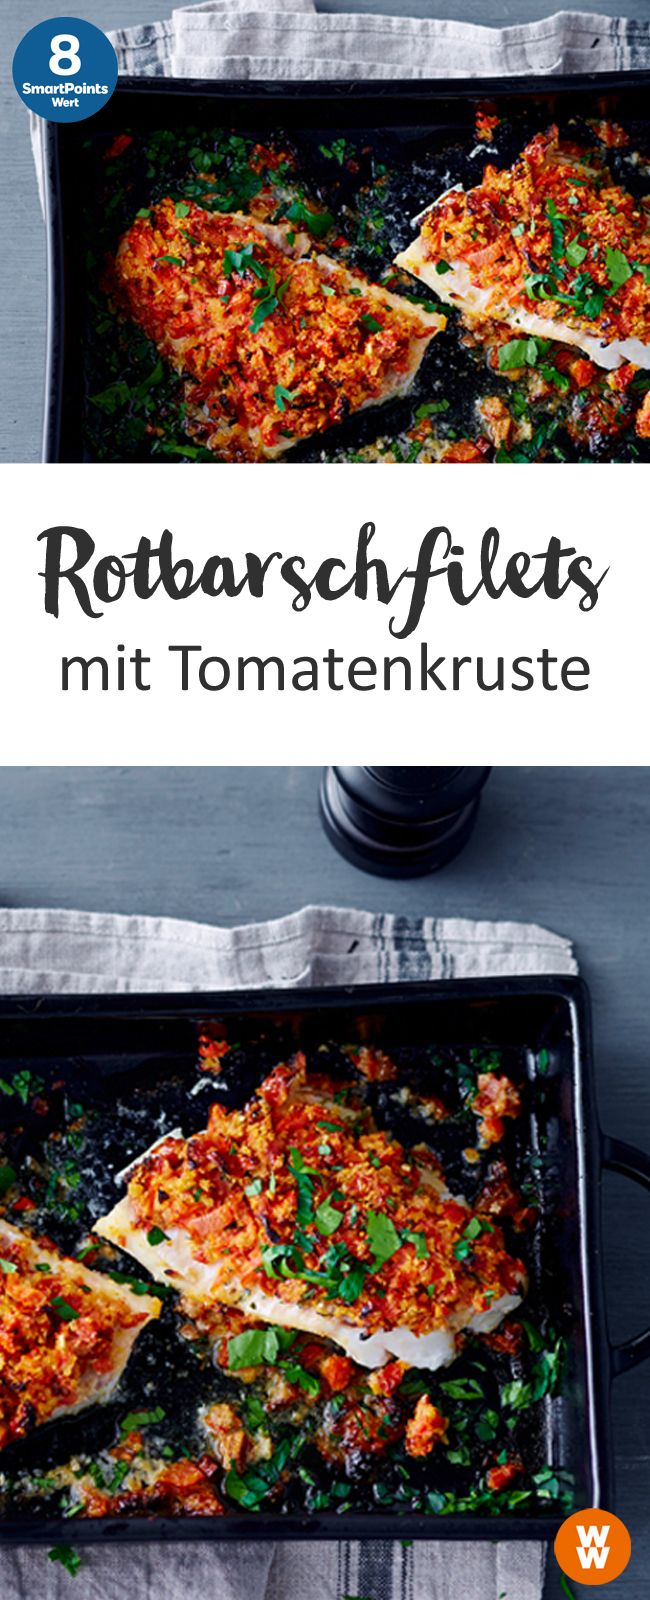 Rotbarschfilets mit Tomatenkruste | 2 Portionen, 8 SmartPoints/Portion, Weight Watchers, Fisch, fertig in 30 min.